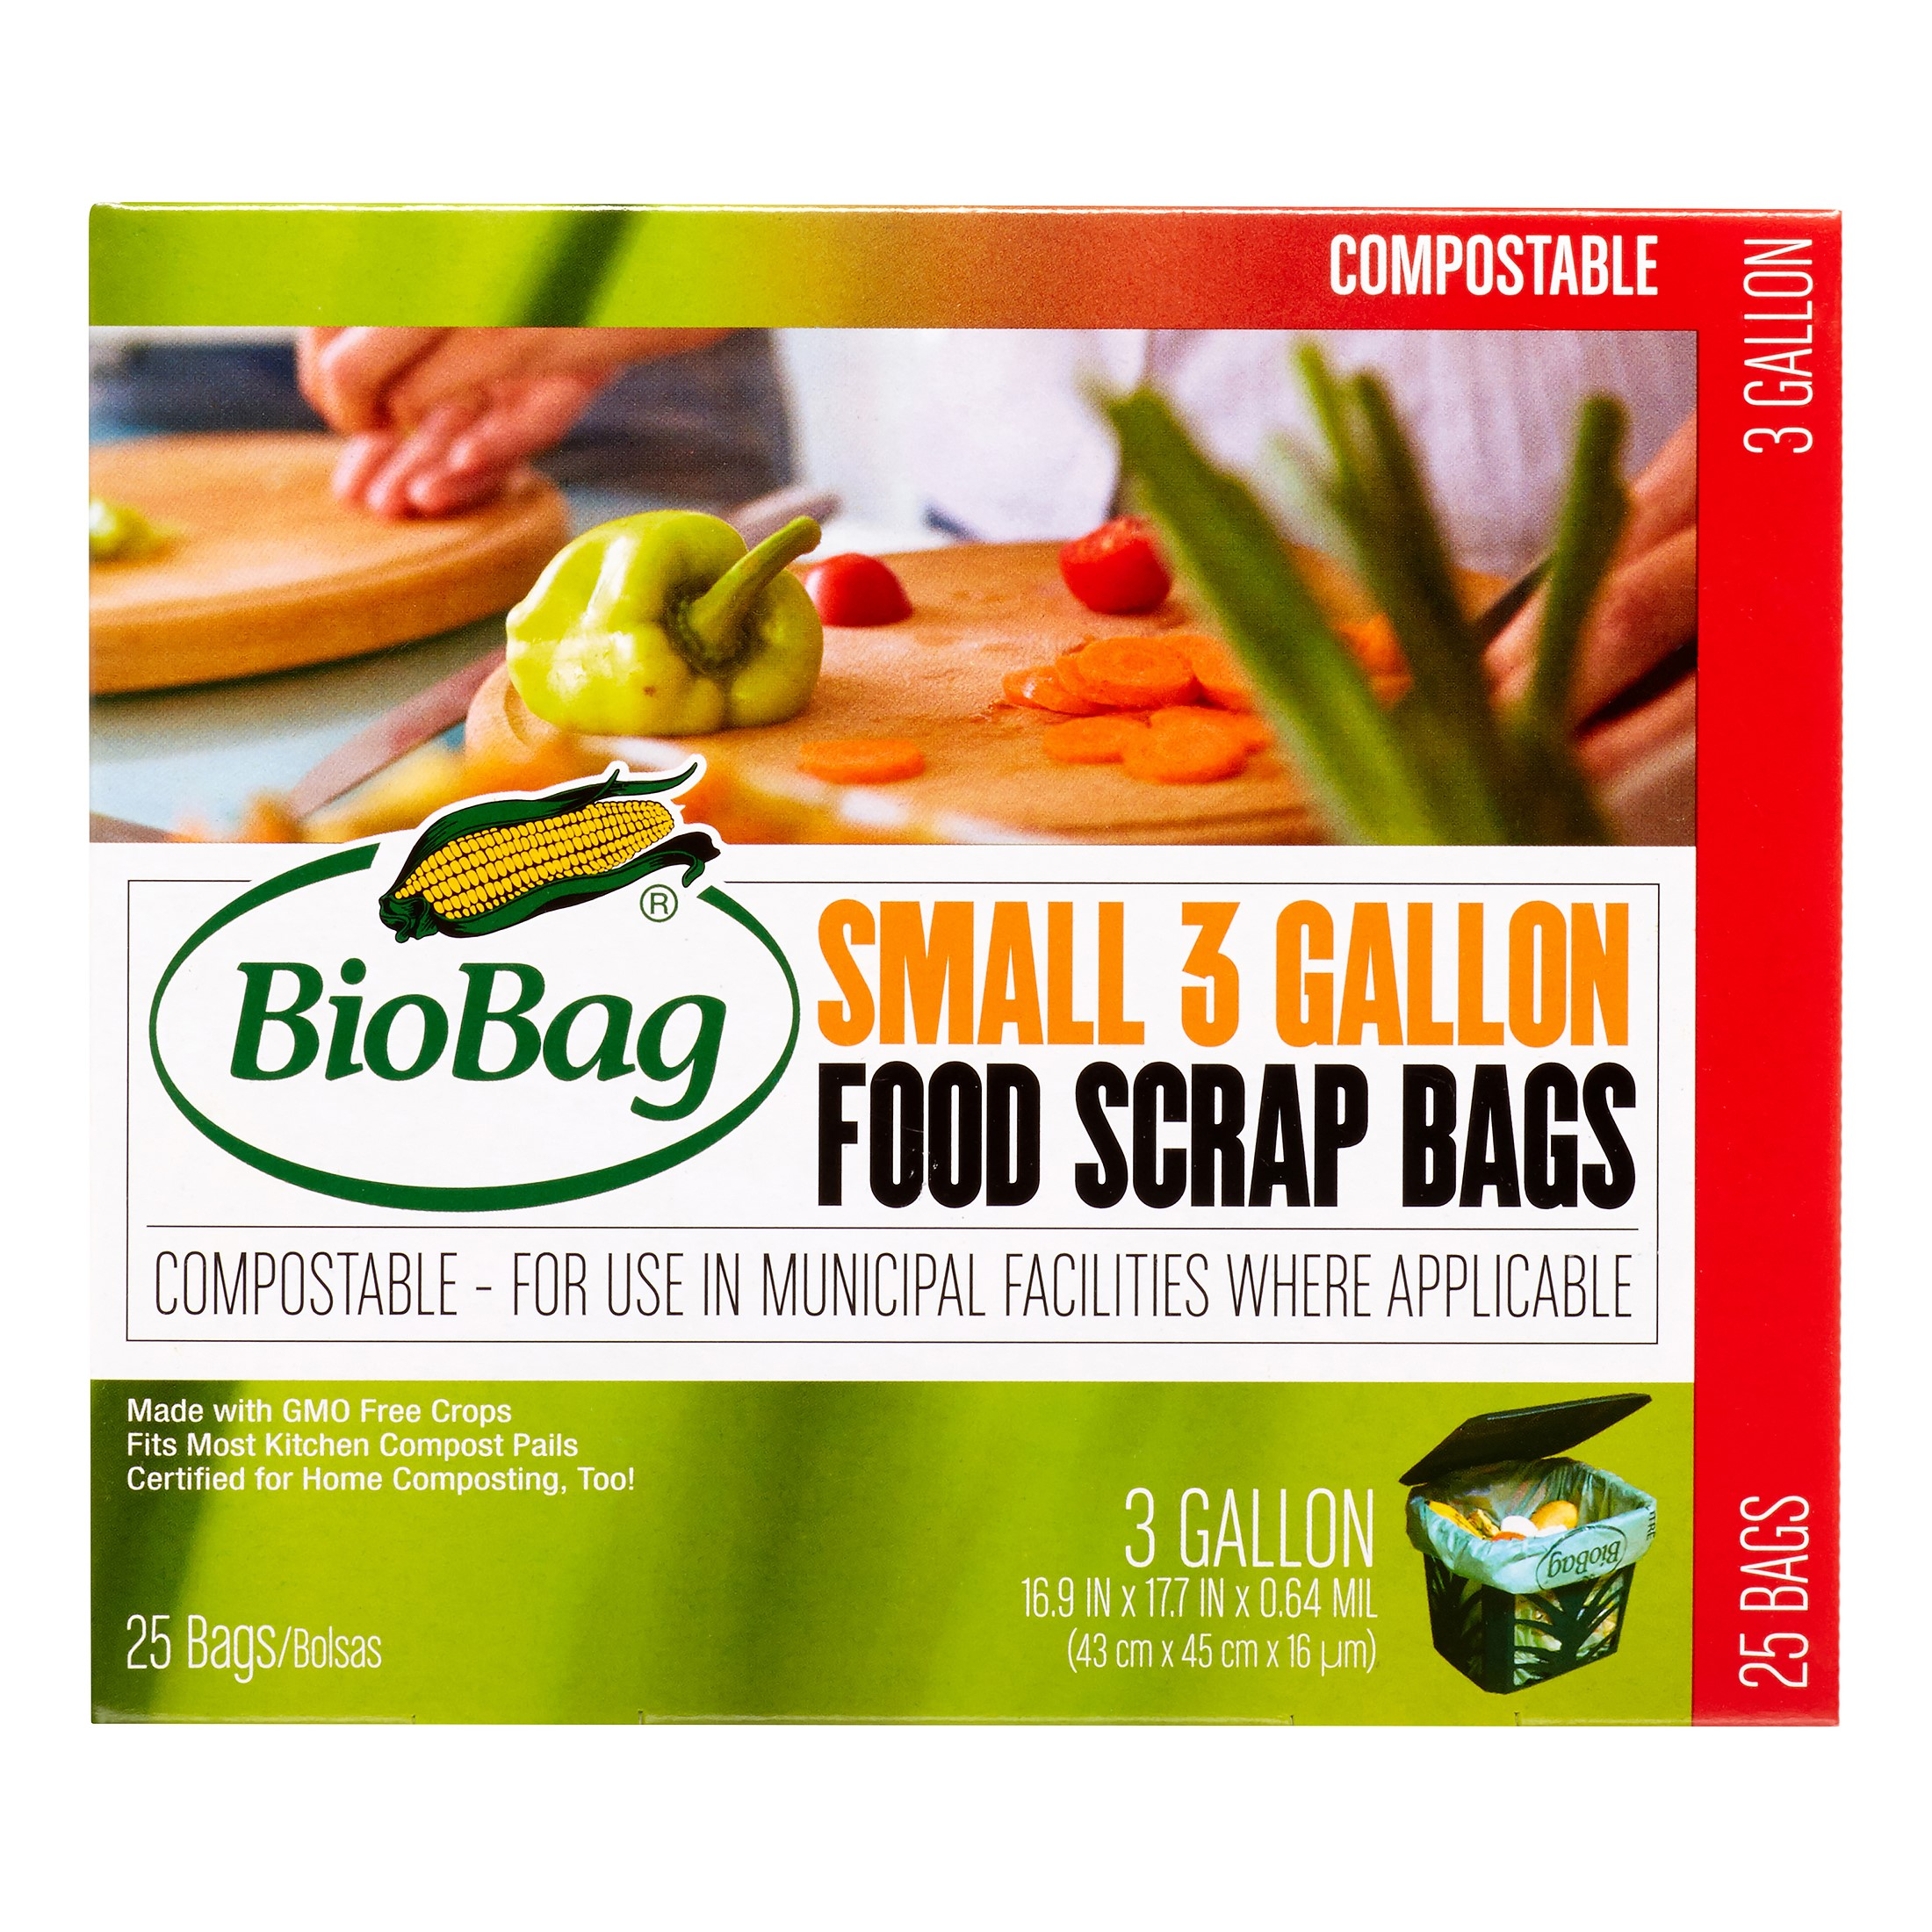 BioBag Small Green Compostable Garbage Bags, 3 Gallon, Green, 25 Ct